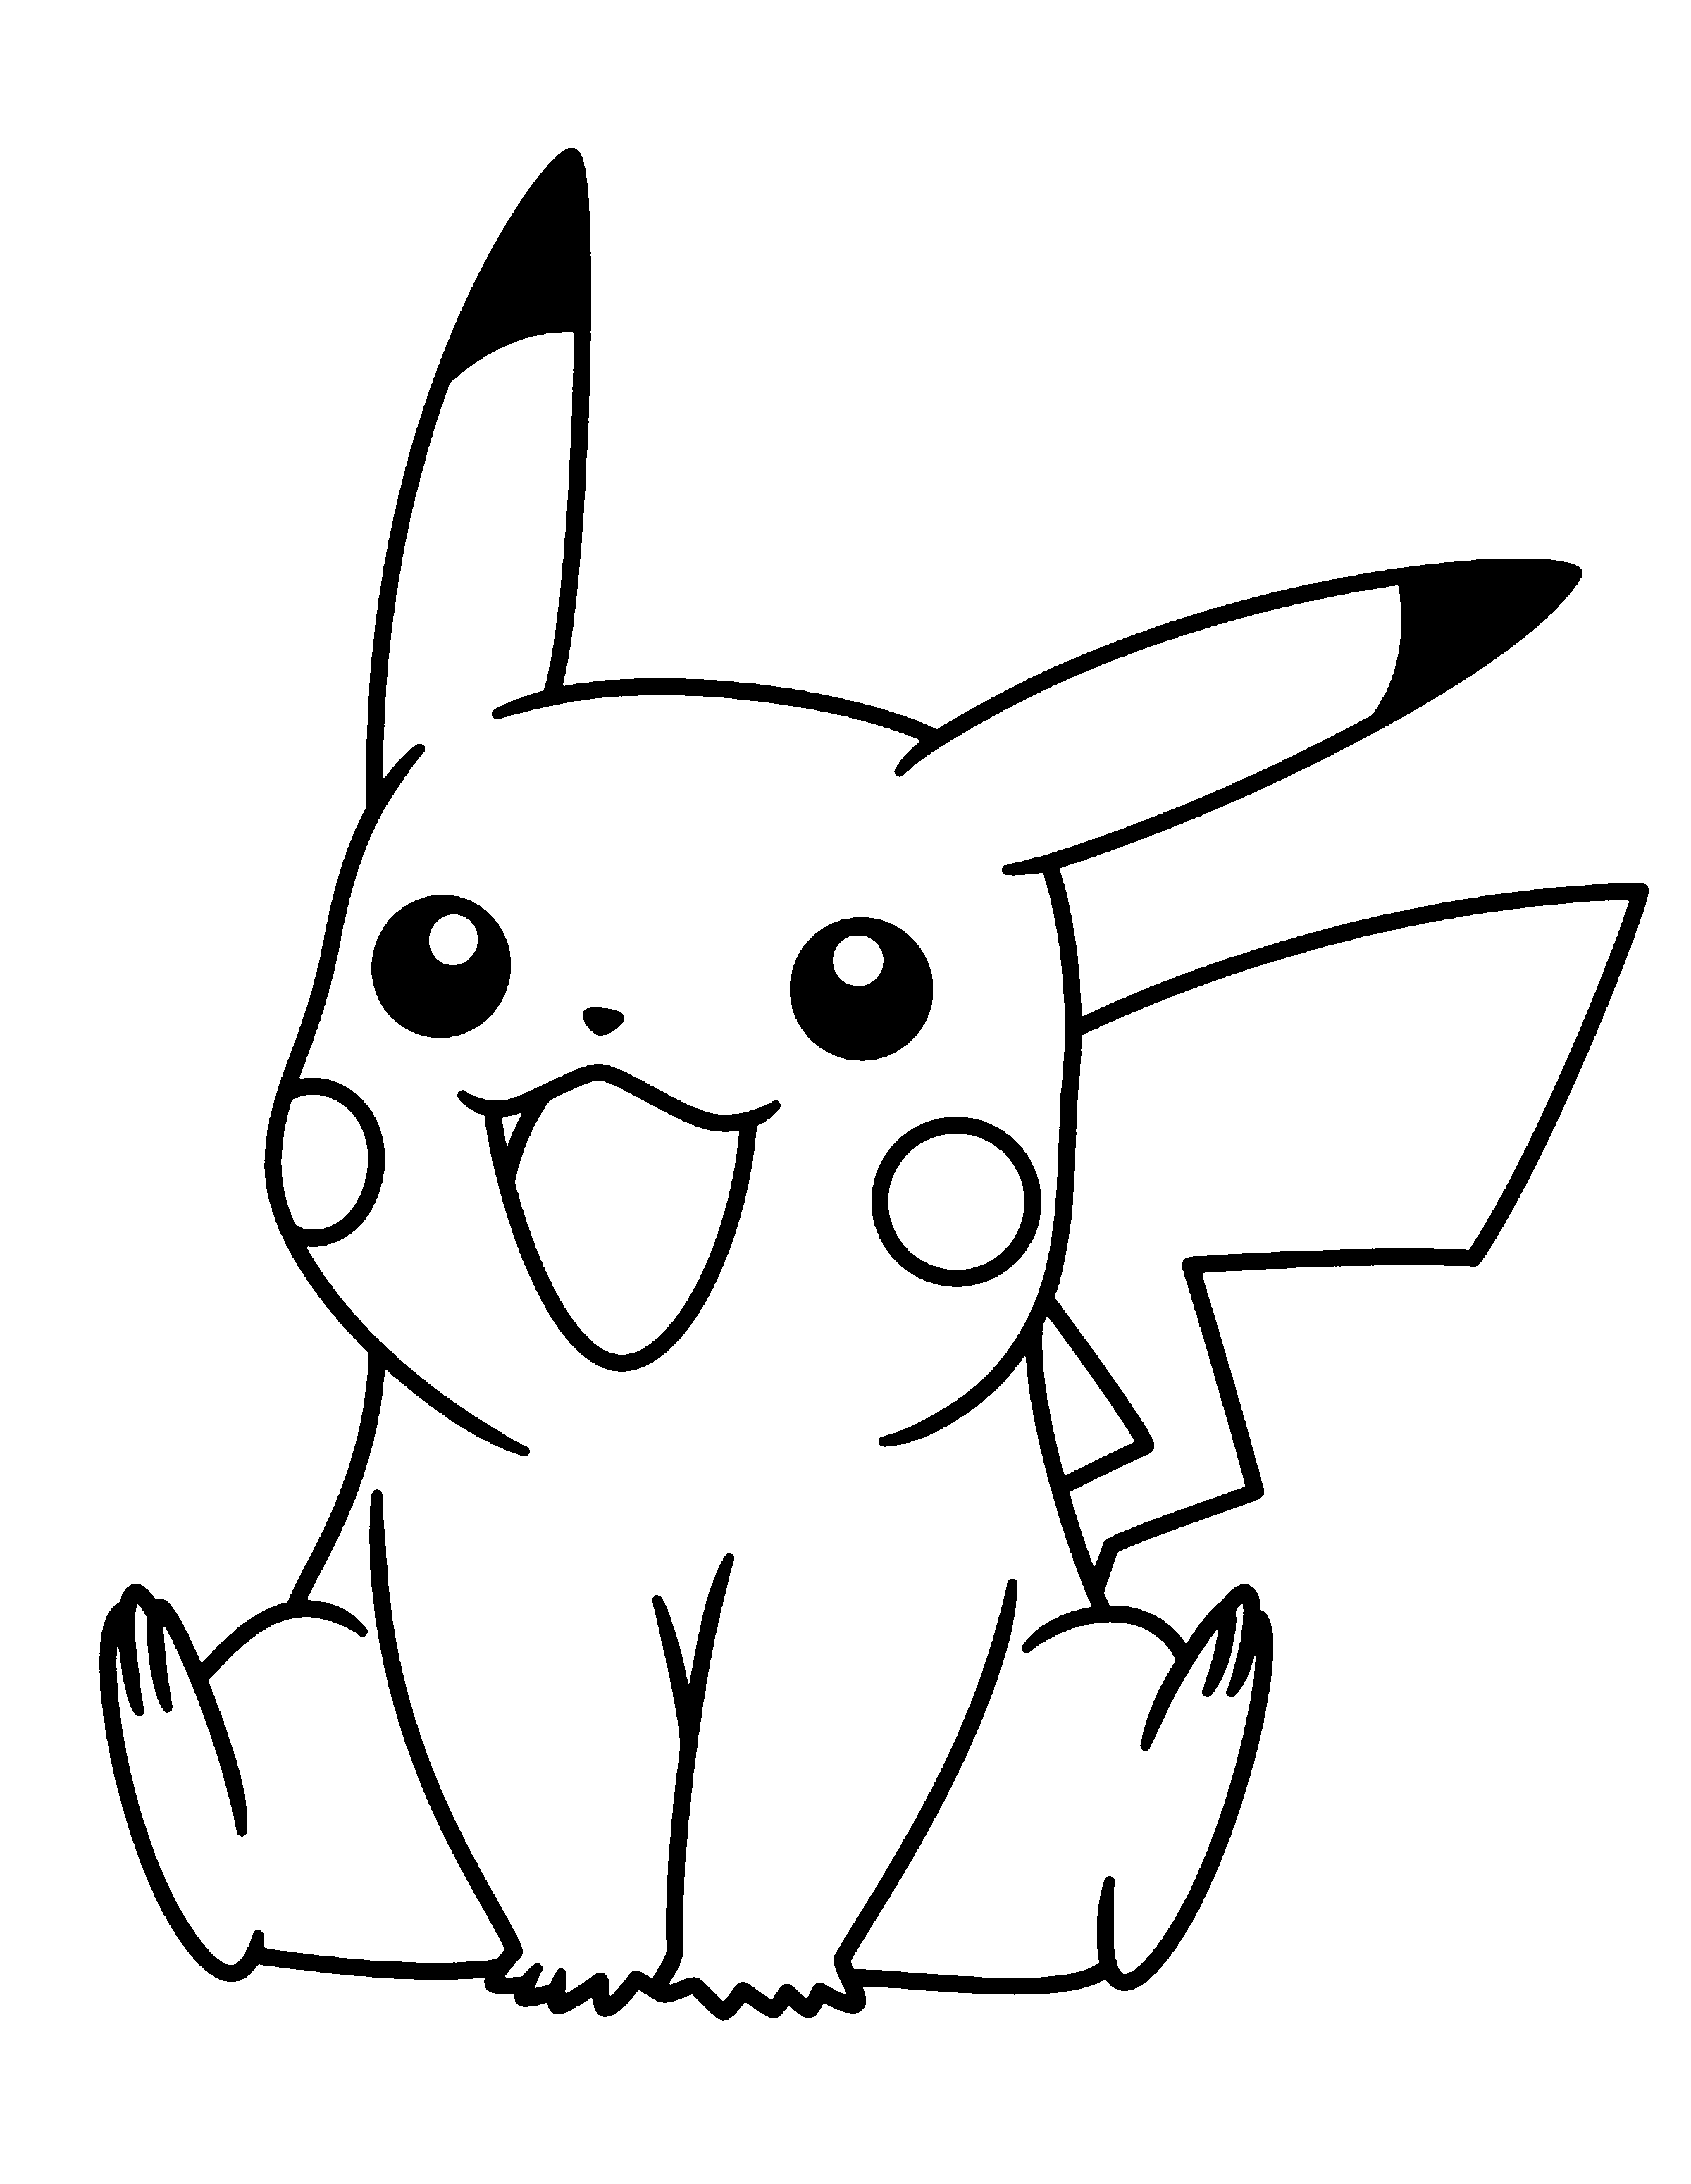 pichu coloring pages - pokemon coloring pages